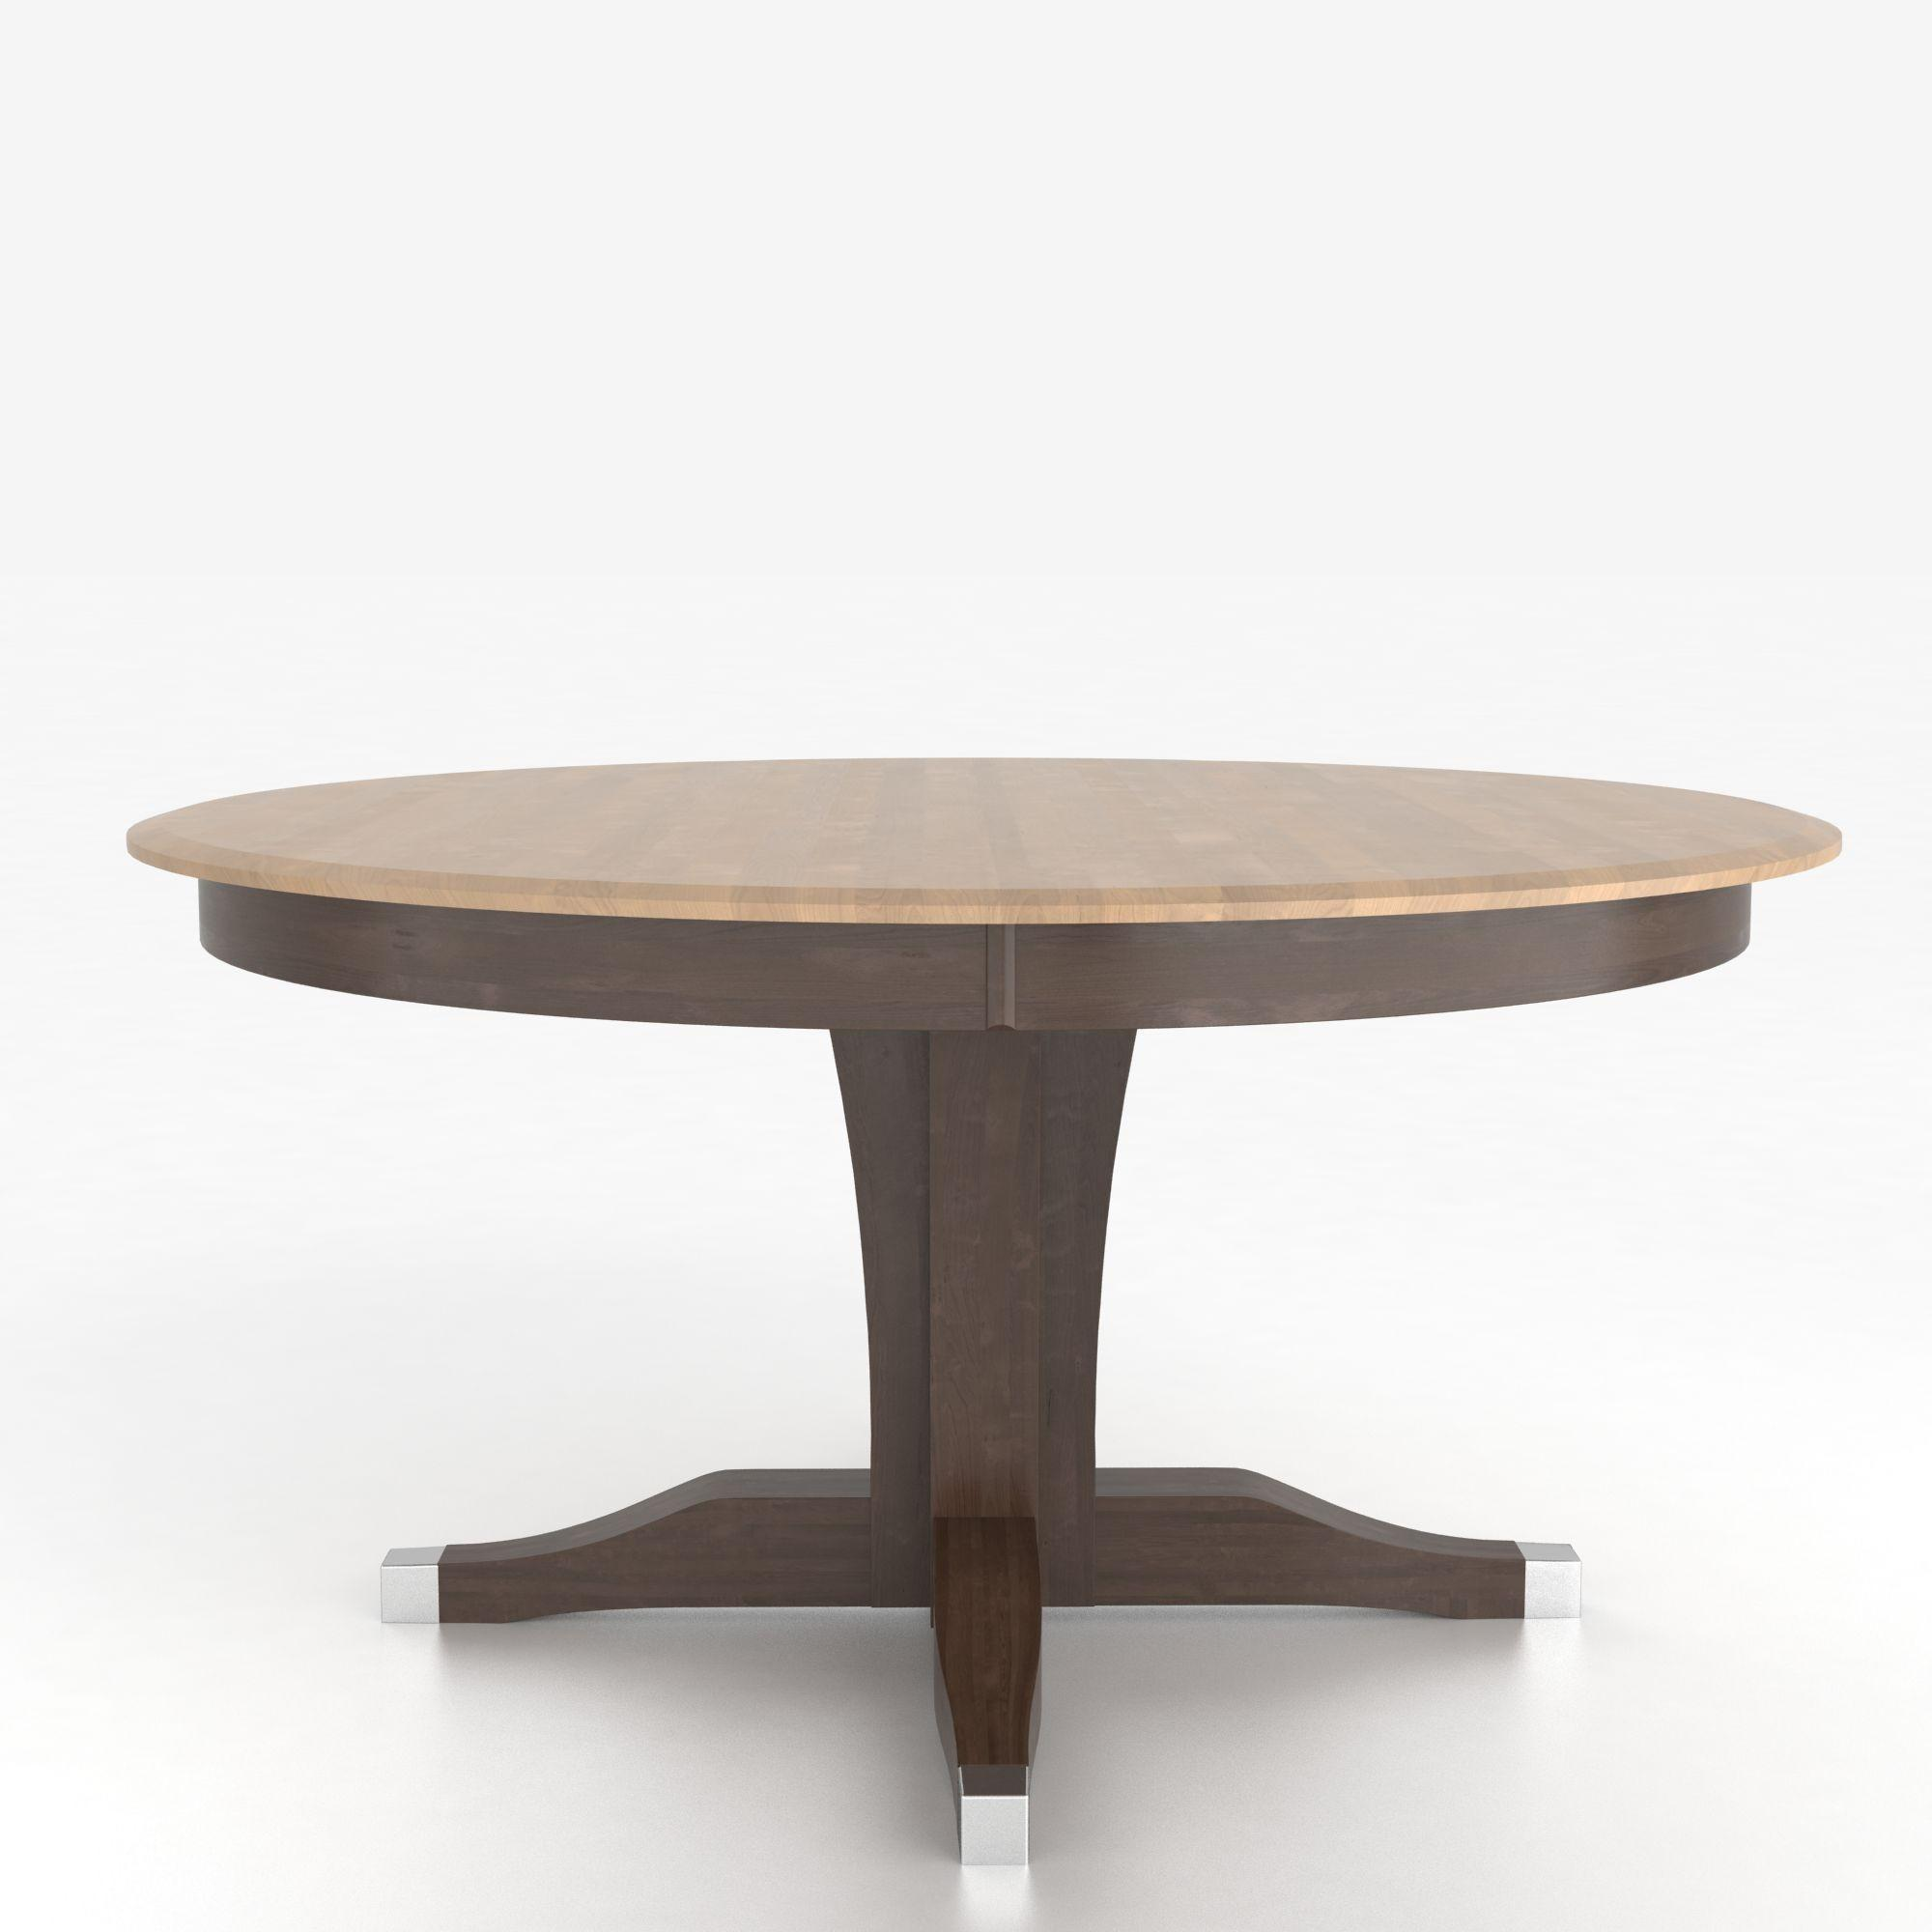 Custom Dining Room Table: Canadel Custom Dining Tables Customizable Round Table With